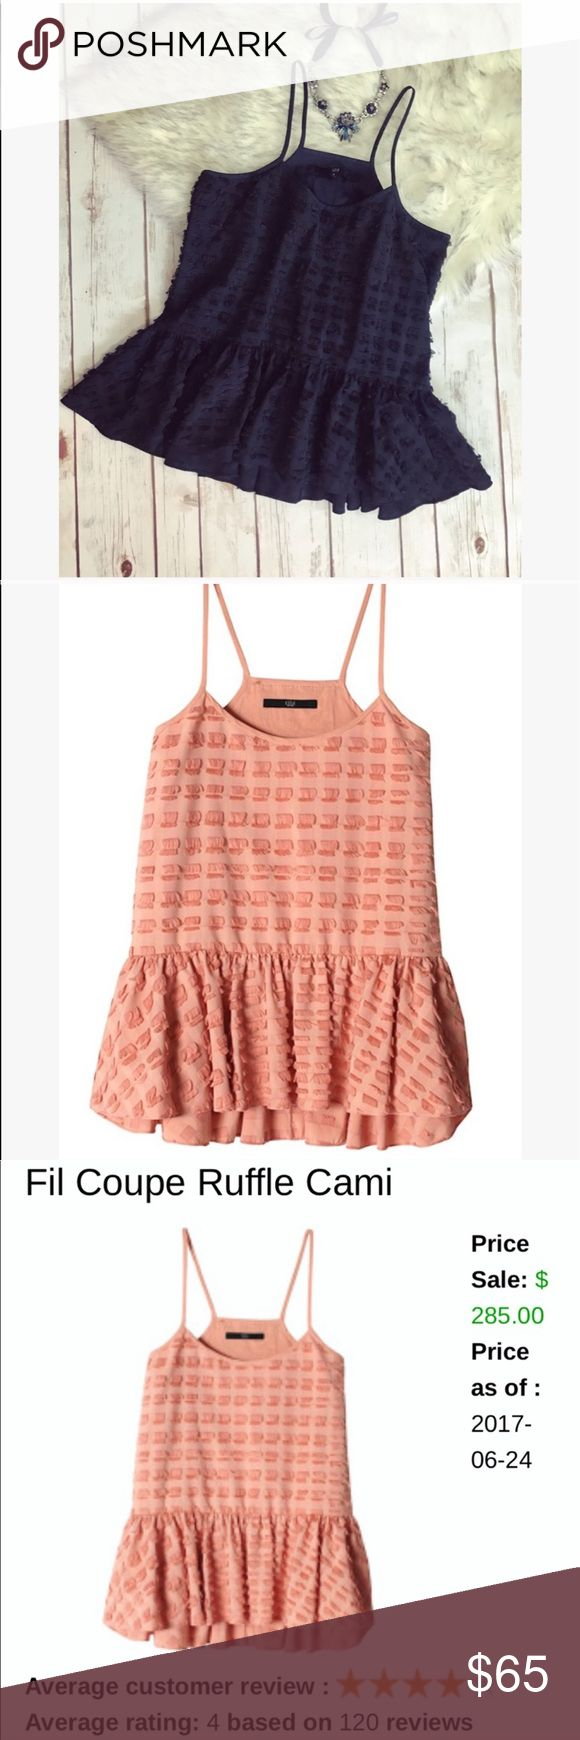 💗 Gorgeous Tibi ruffle cami flare top 💗 💝 Gorgeous Tibi couple ruffle cami top in size 6 and color is navy (couldn't find original picture in this color but I did found in orange) fit flare so gorgeous and great quality material 💝 Tibi Tops Blouses